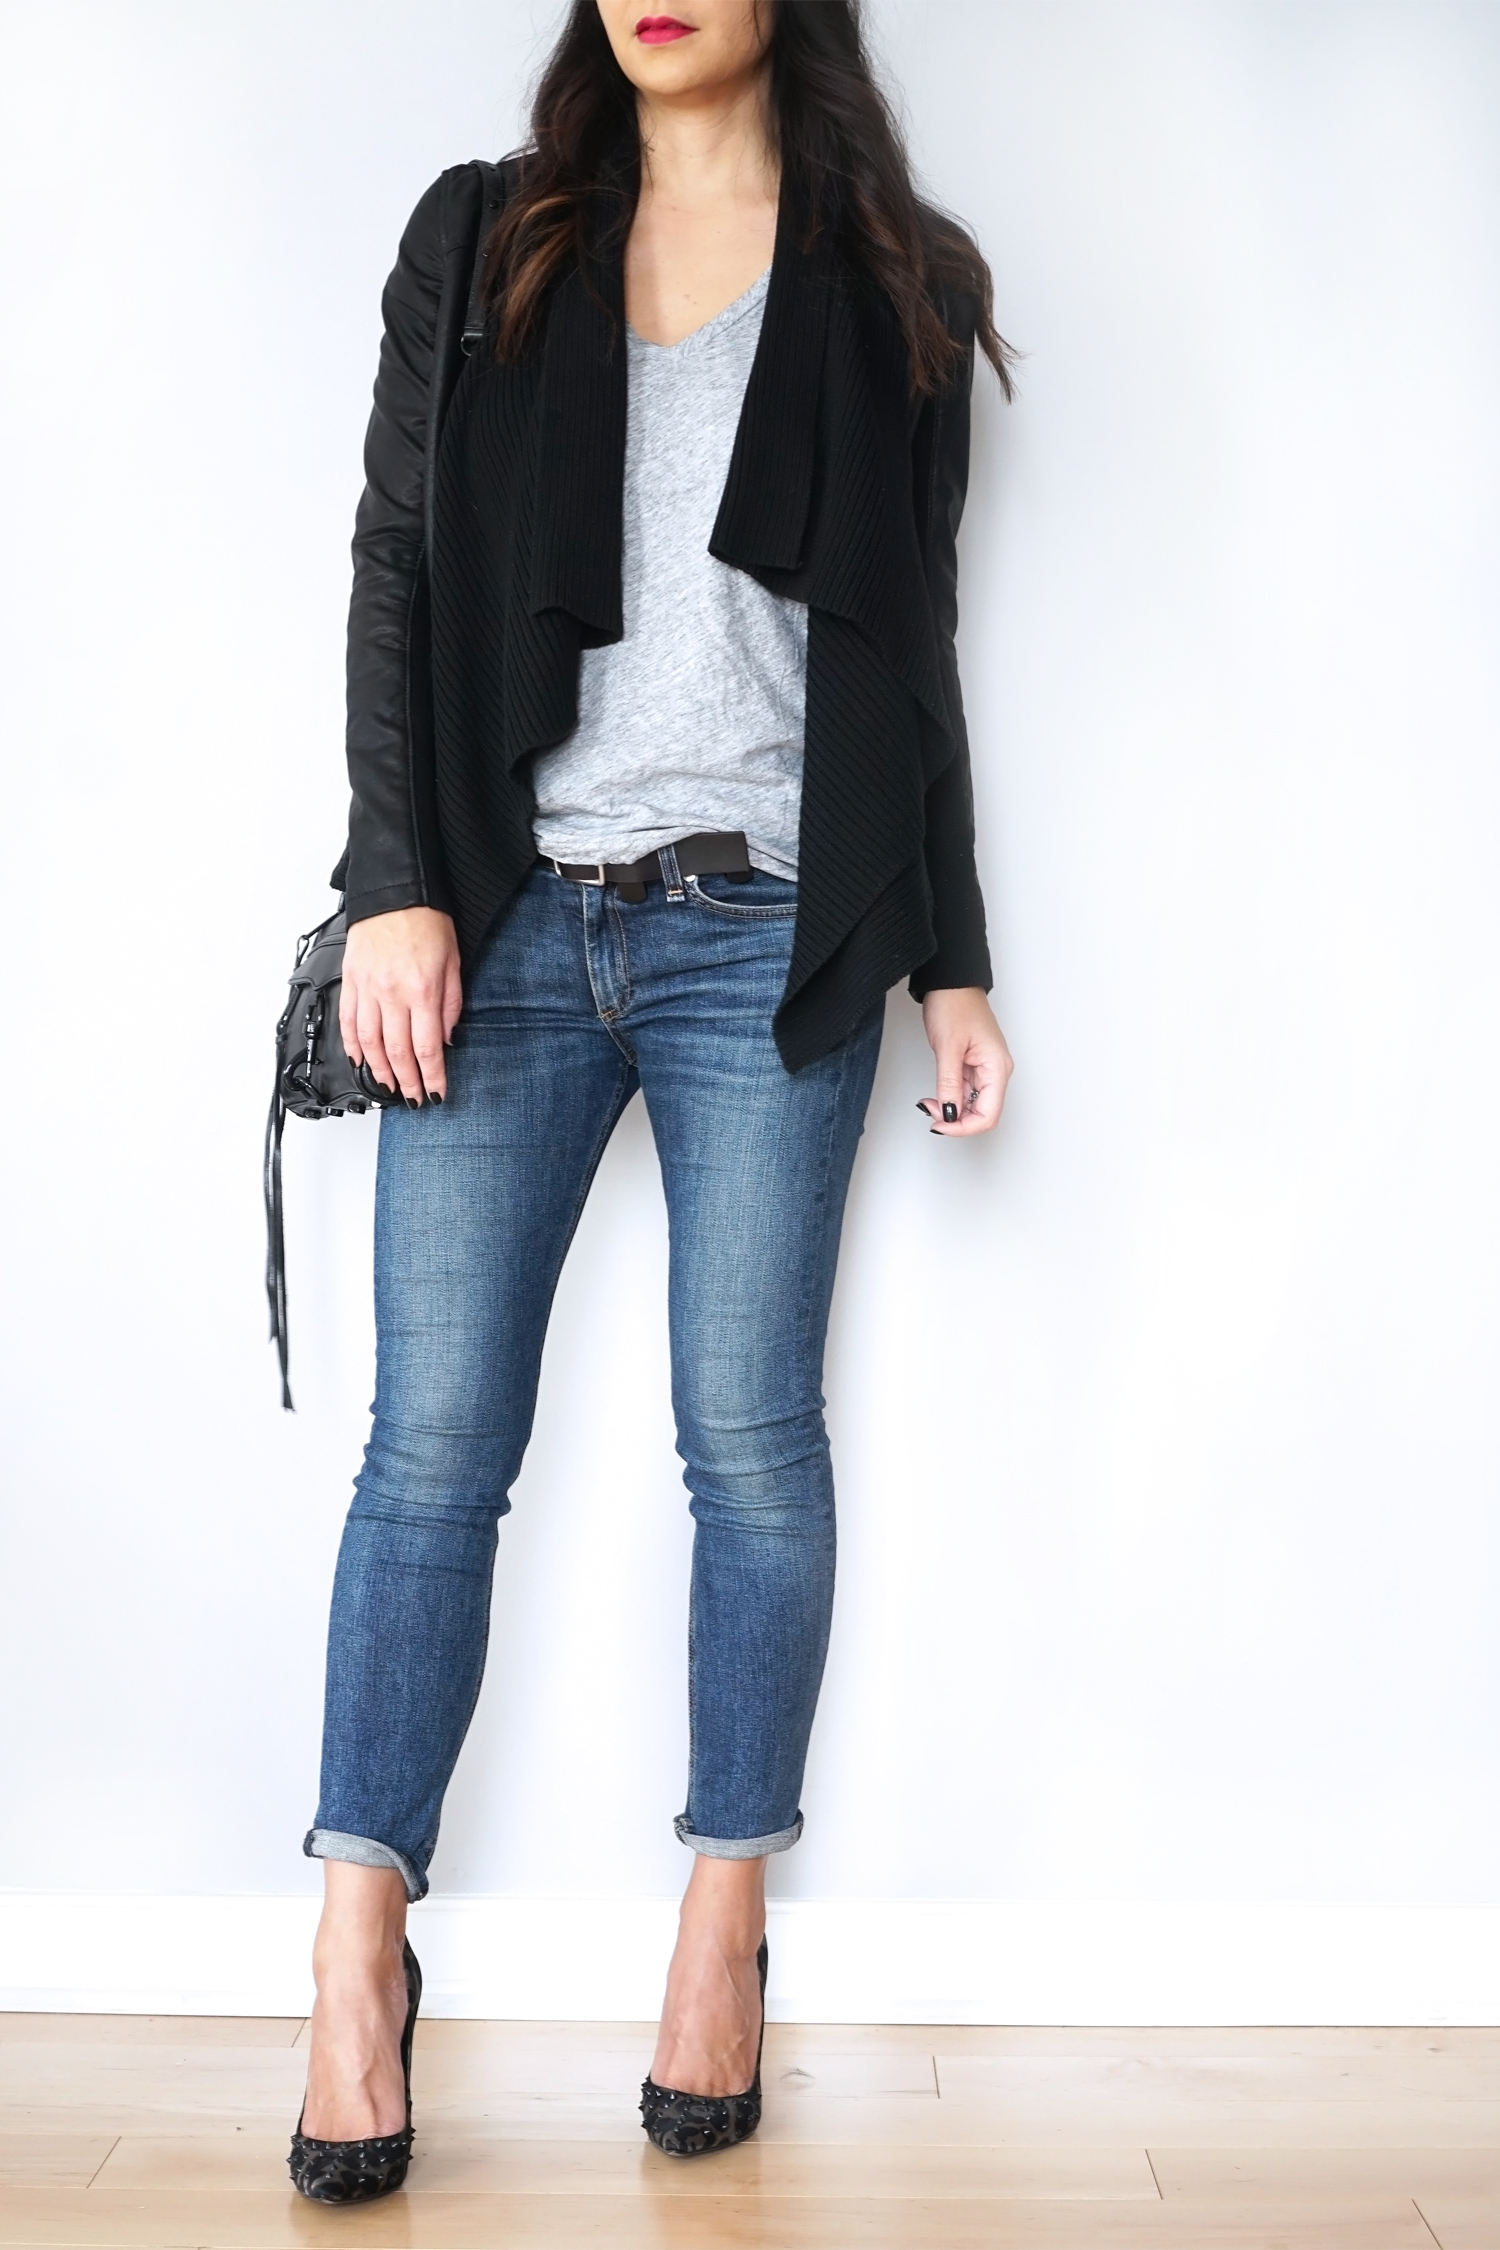 Concealed Carry Outfit Women